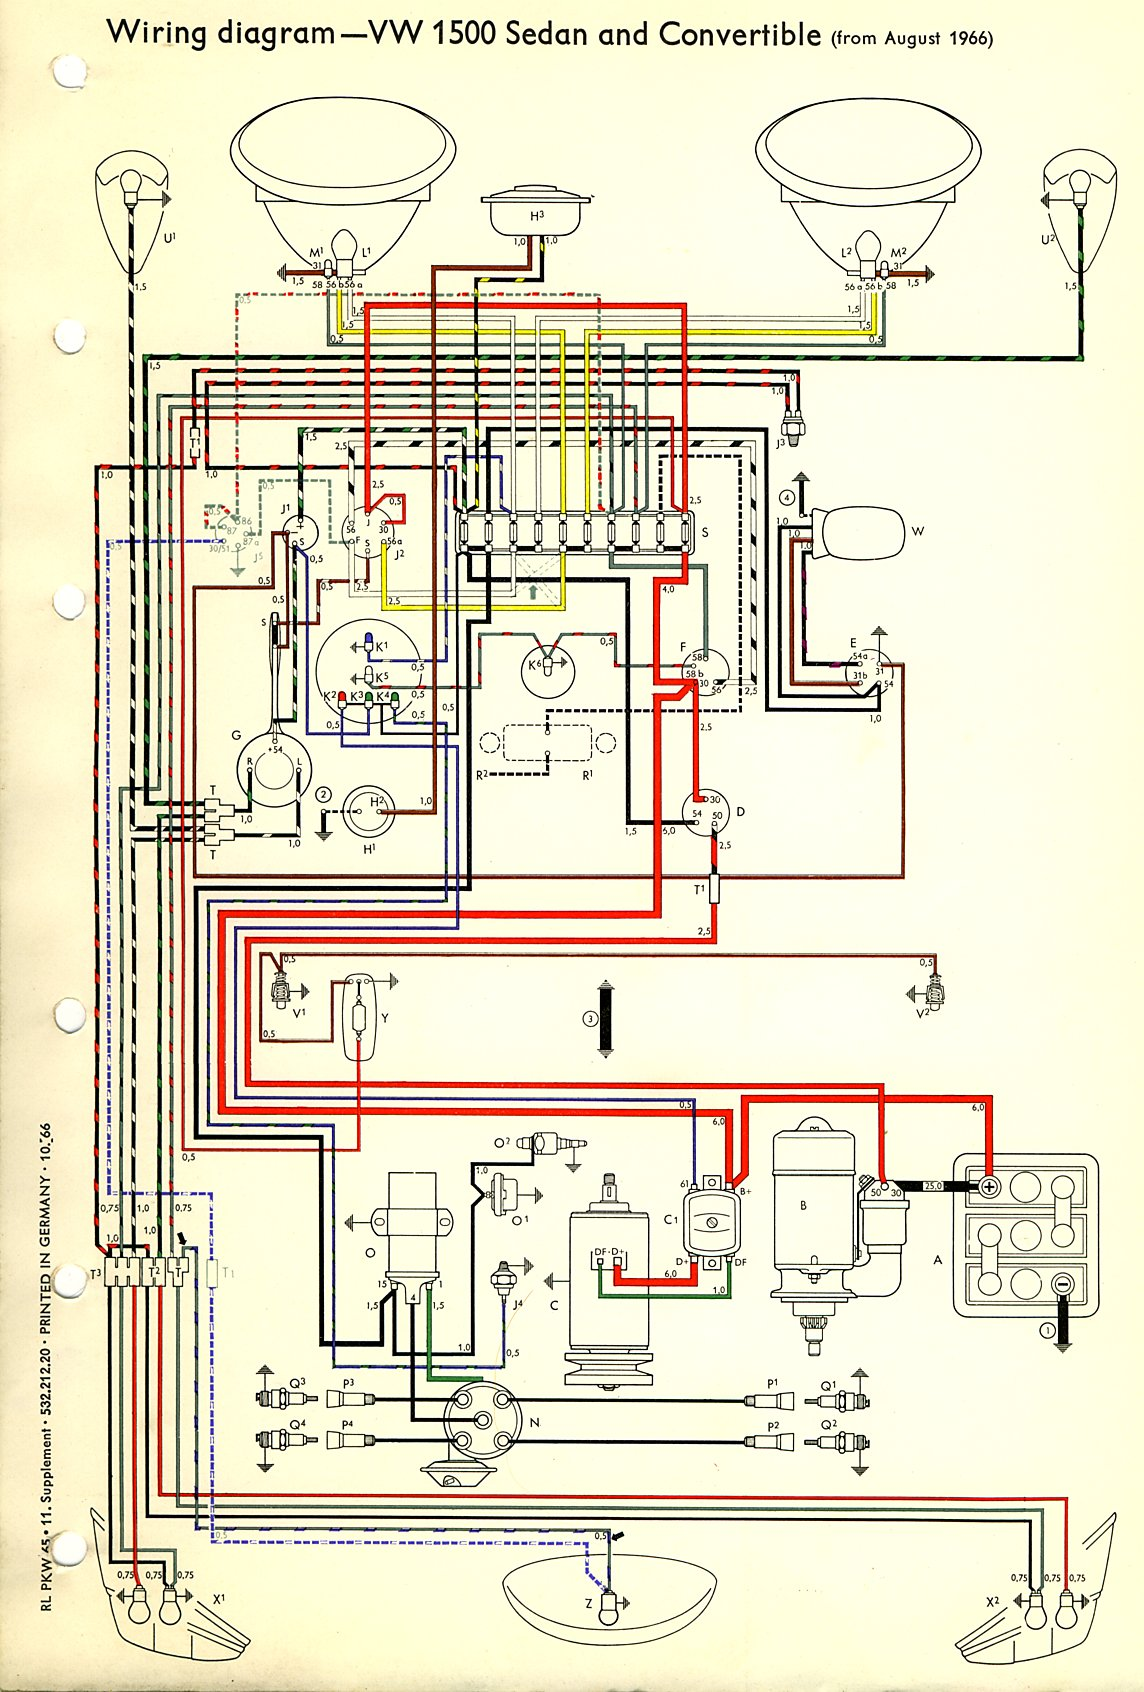 bug_67 1967 beetle wiring diagram thegoldenbug com 1973 vw super beetle wiring harness at creativeand.co